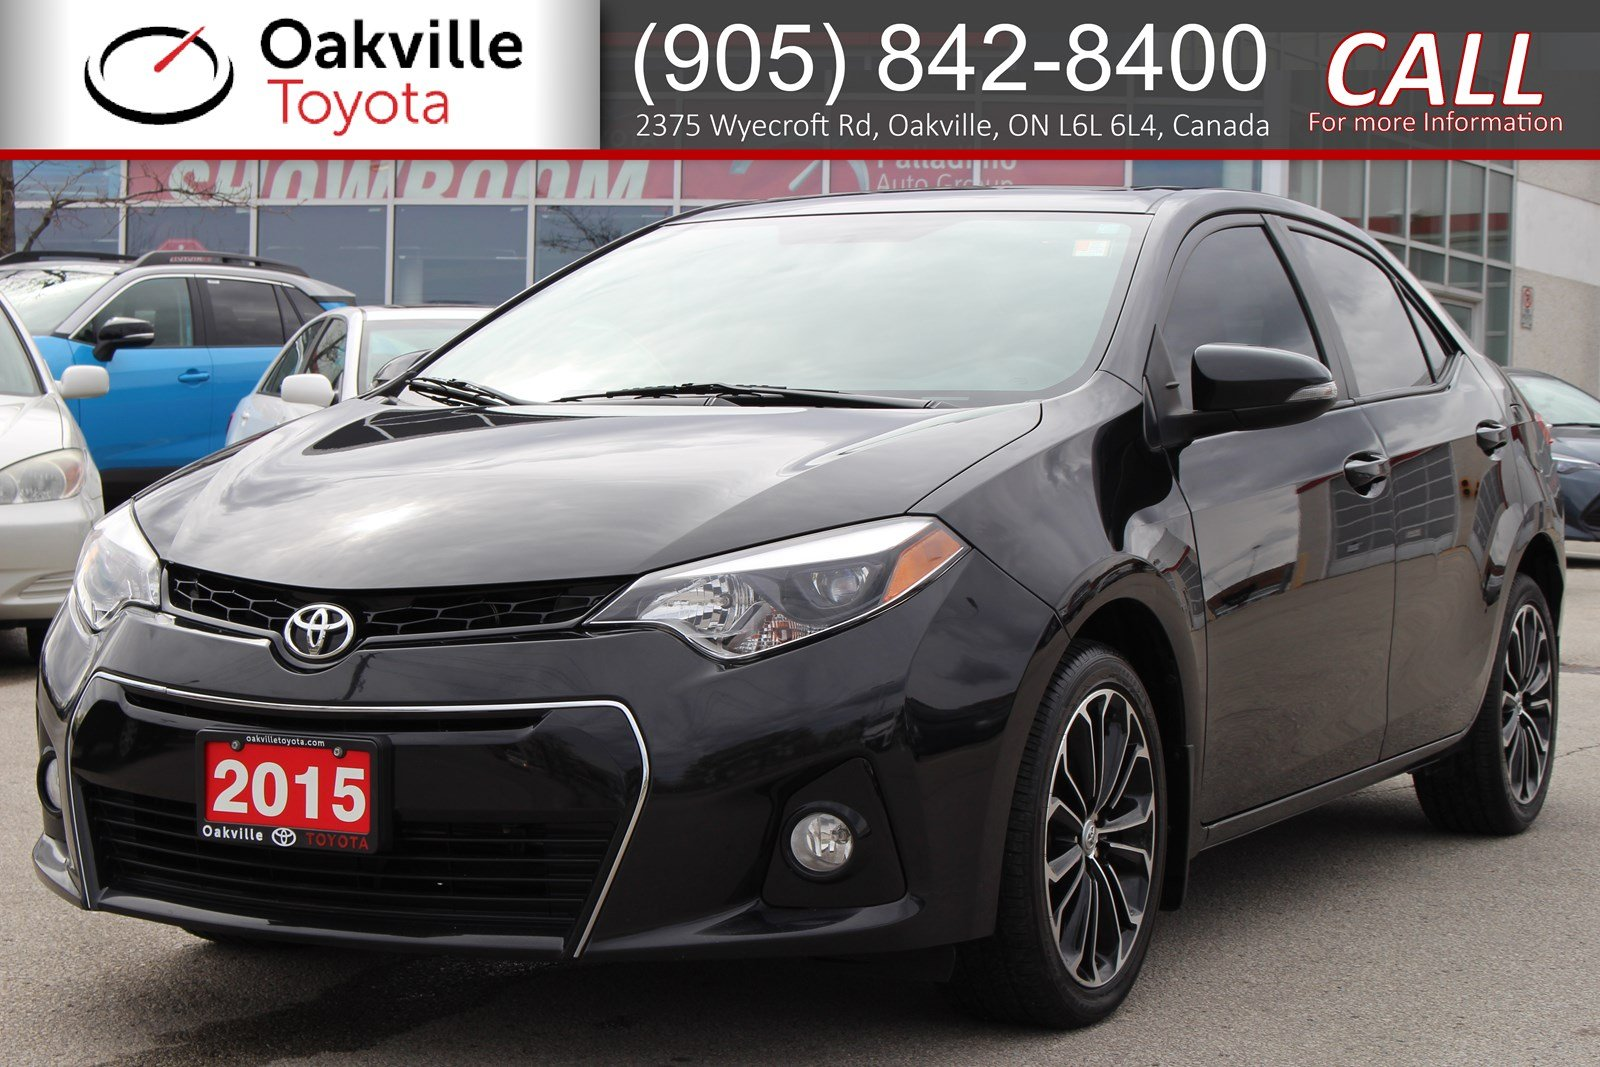 Pre-Owned 2015 Toyota Corolla S with Low Kilometres and Single Owner